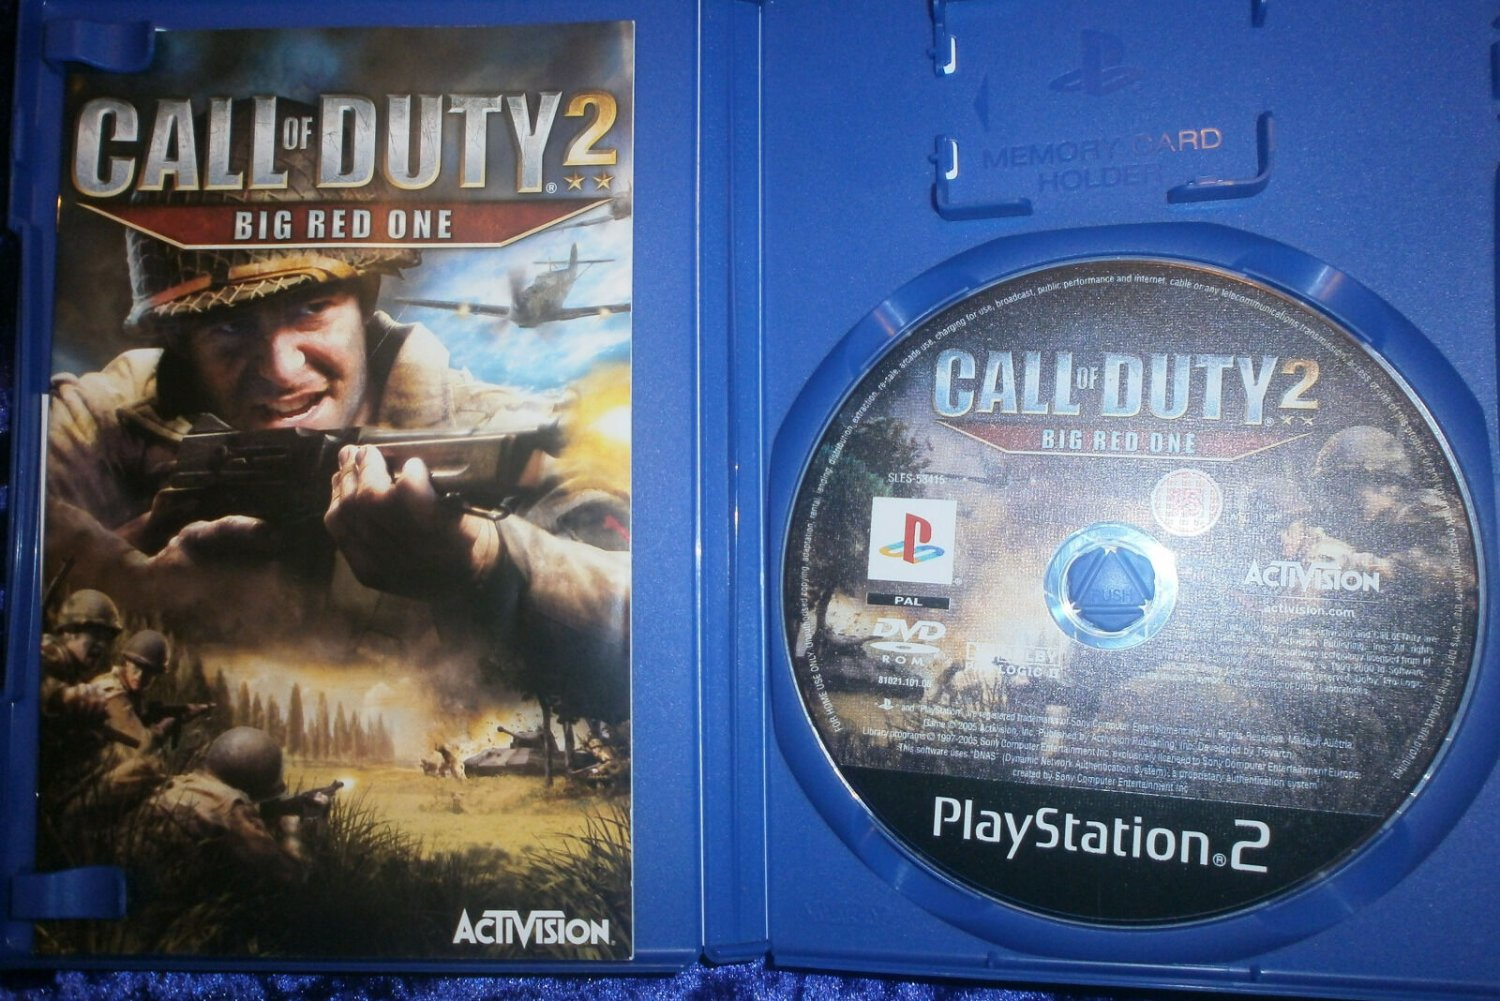 Call of Duty 2 Big Red One 2006 Activision PS2 Game